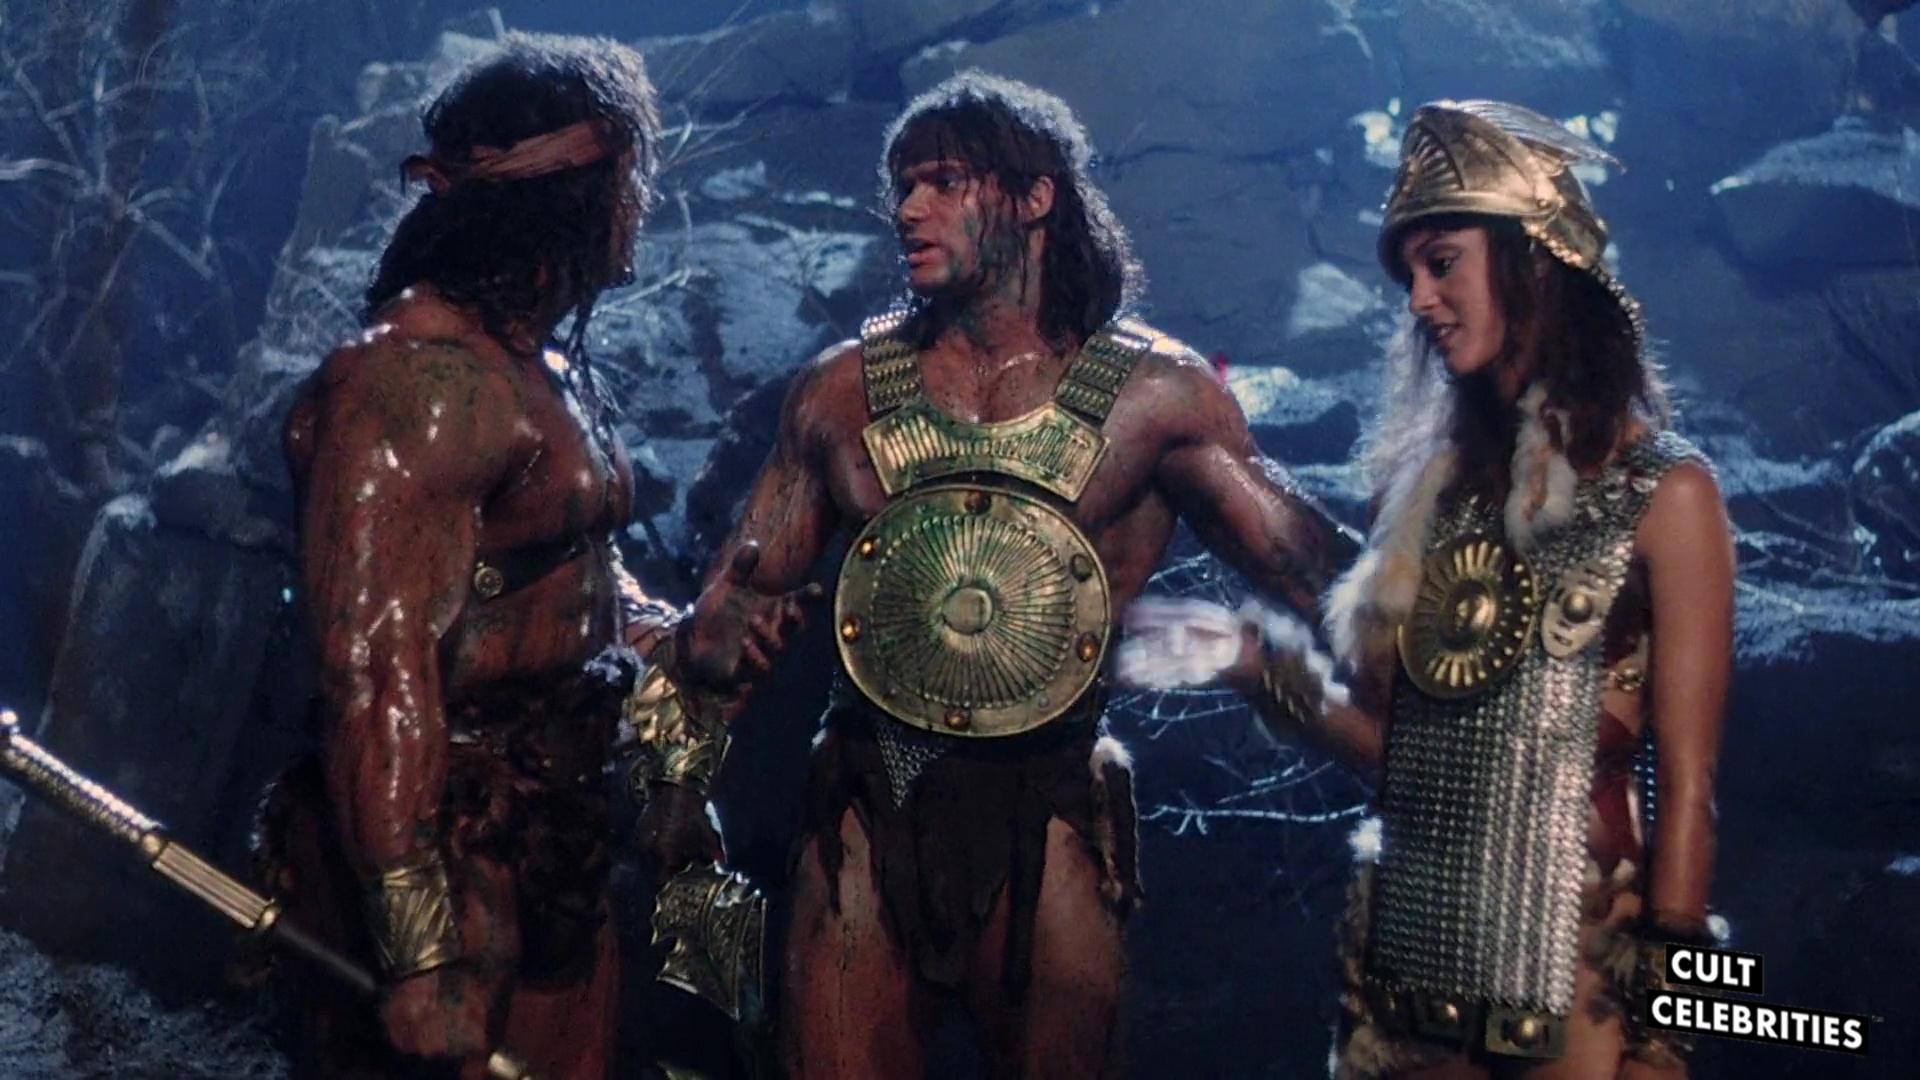 David and Peter Paul with Eva La Rue in The Barbarians (1987)